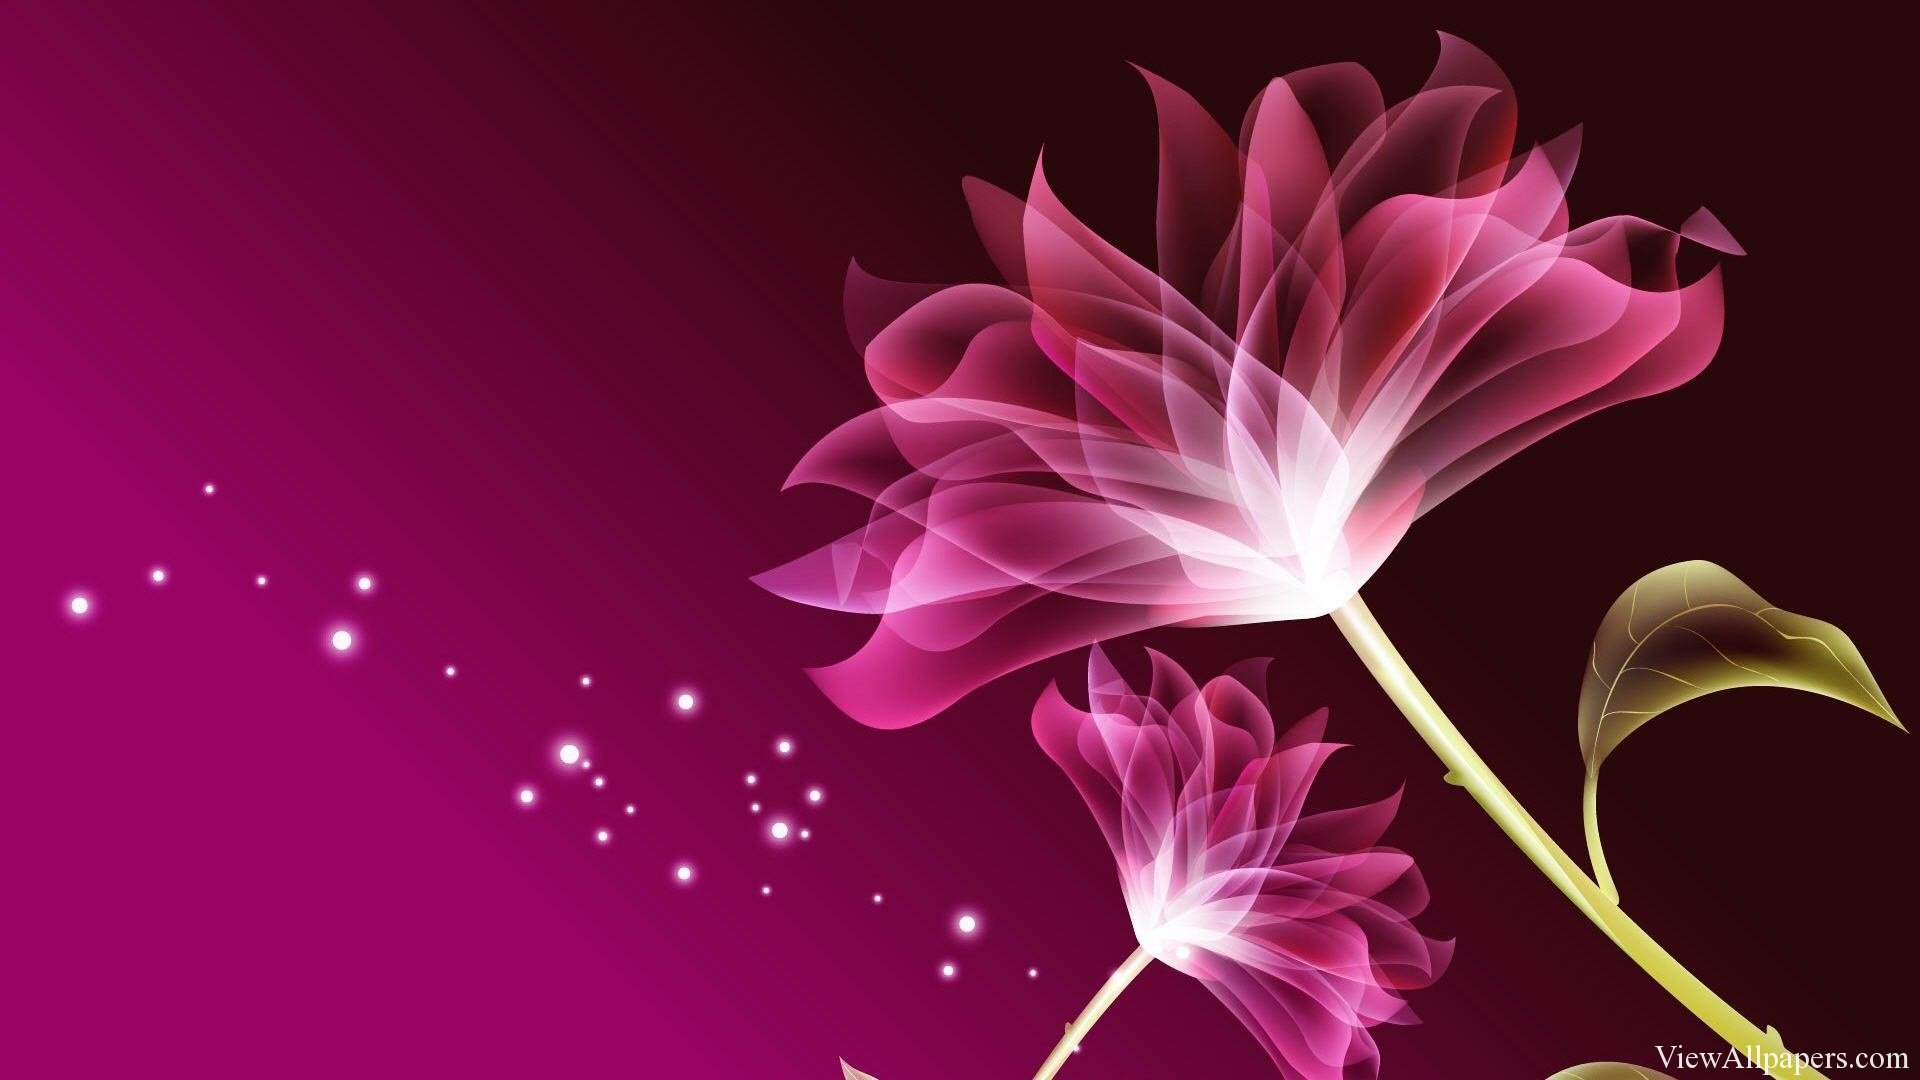 Beautiful flowers images wallpapers wallpapersafari 3d pink beautiful flower wallpaper high resolution wallpaper 1920x1080 izmirmasajfo Image collections